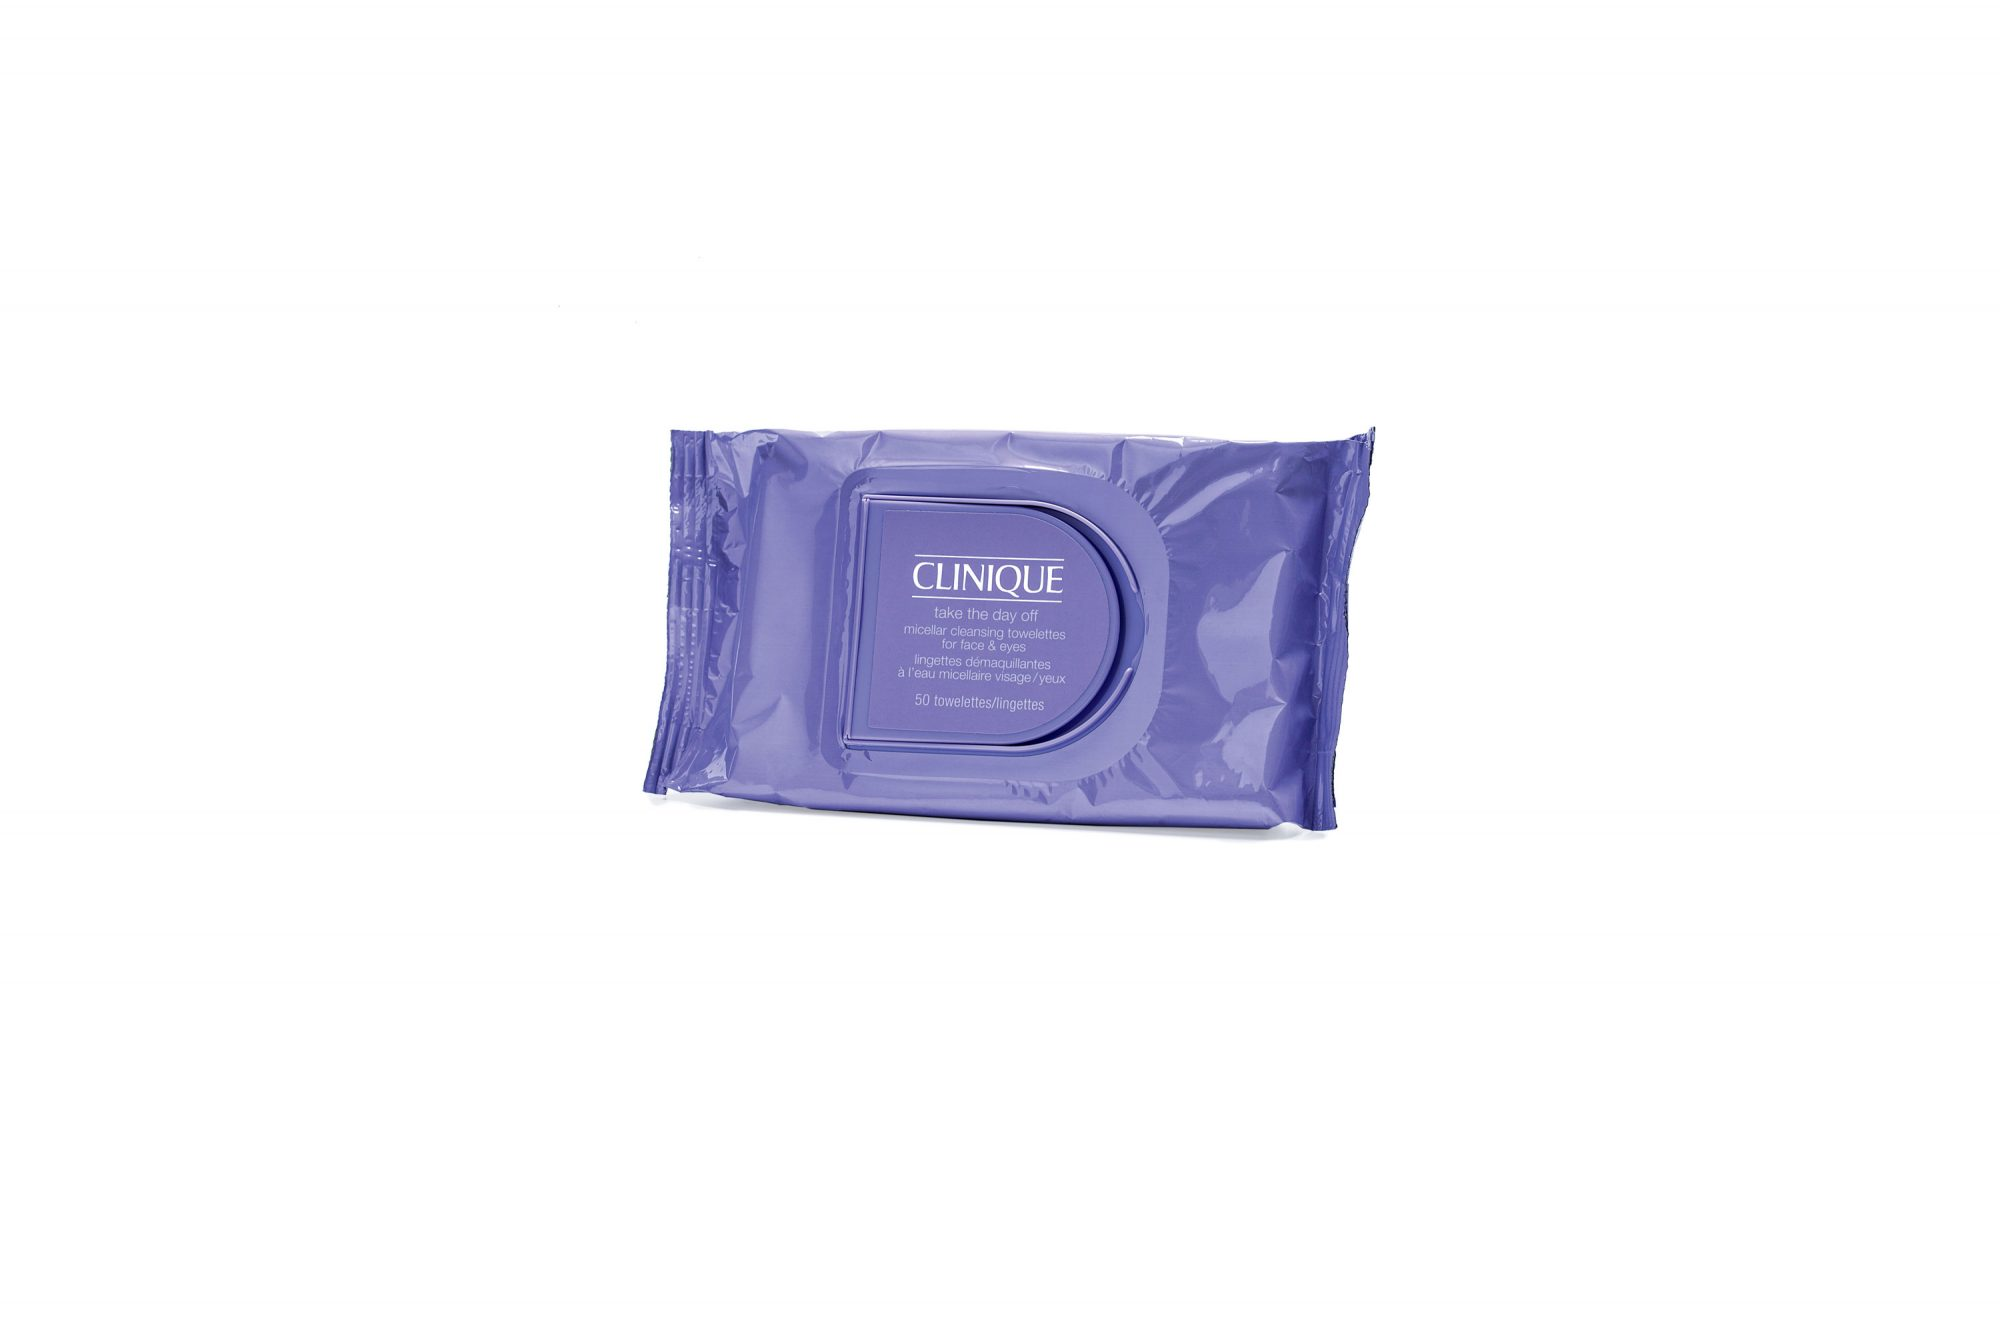 Clinique Cleansing Towelettes